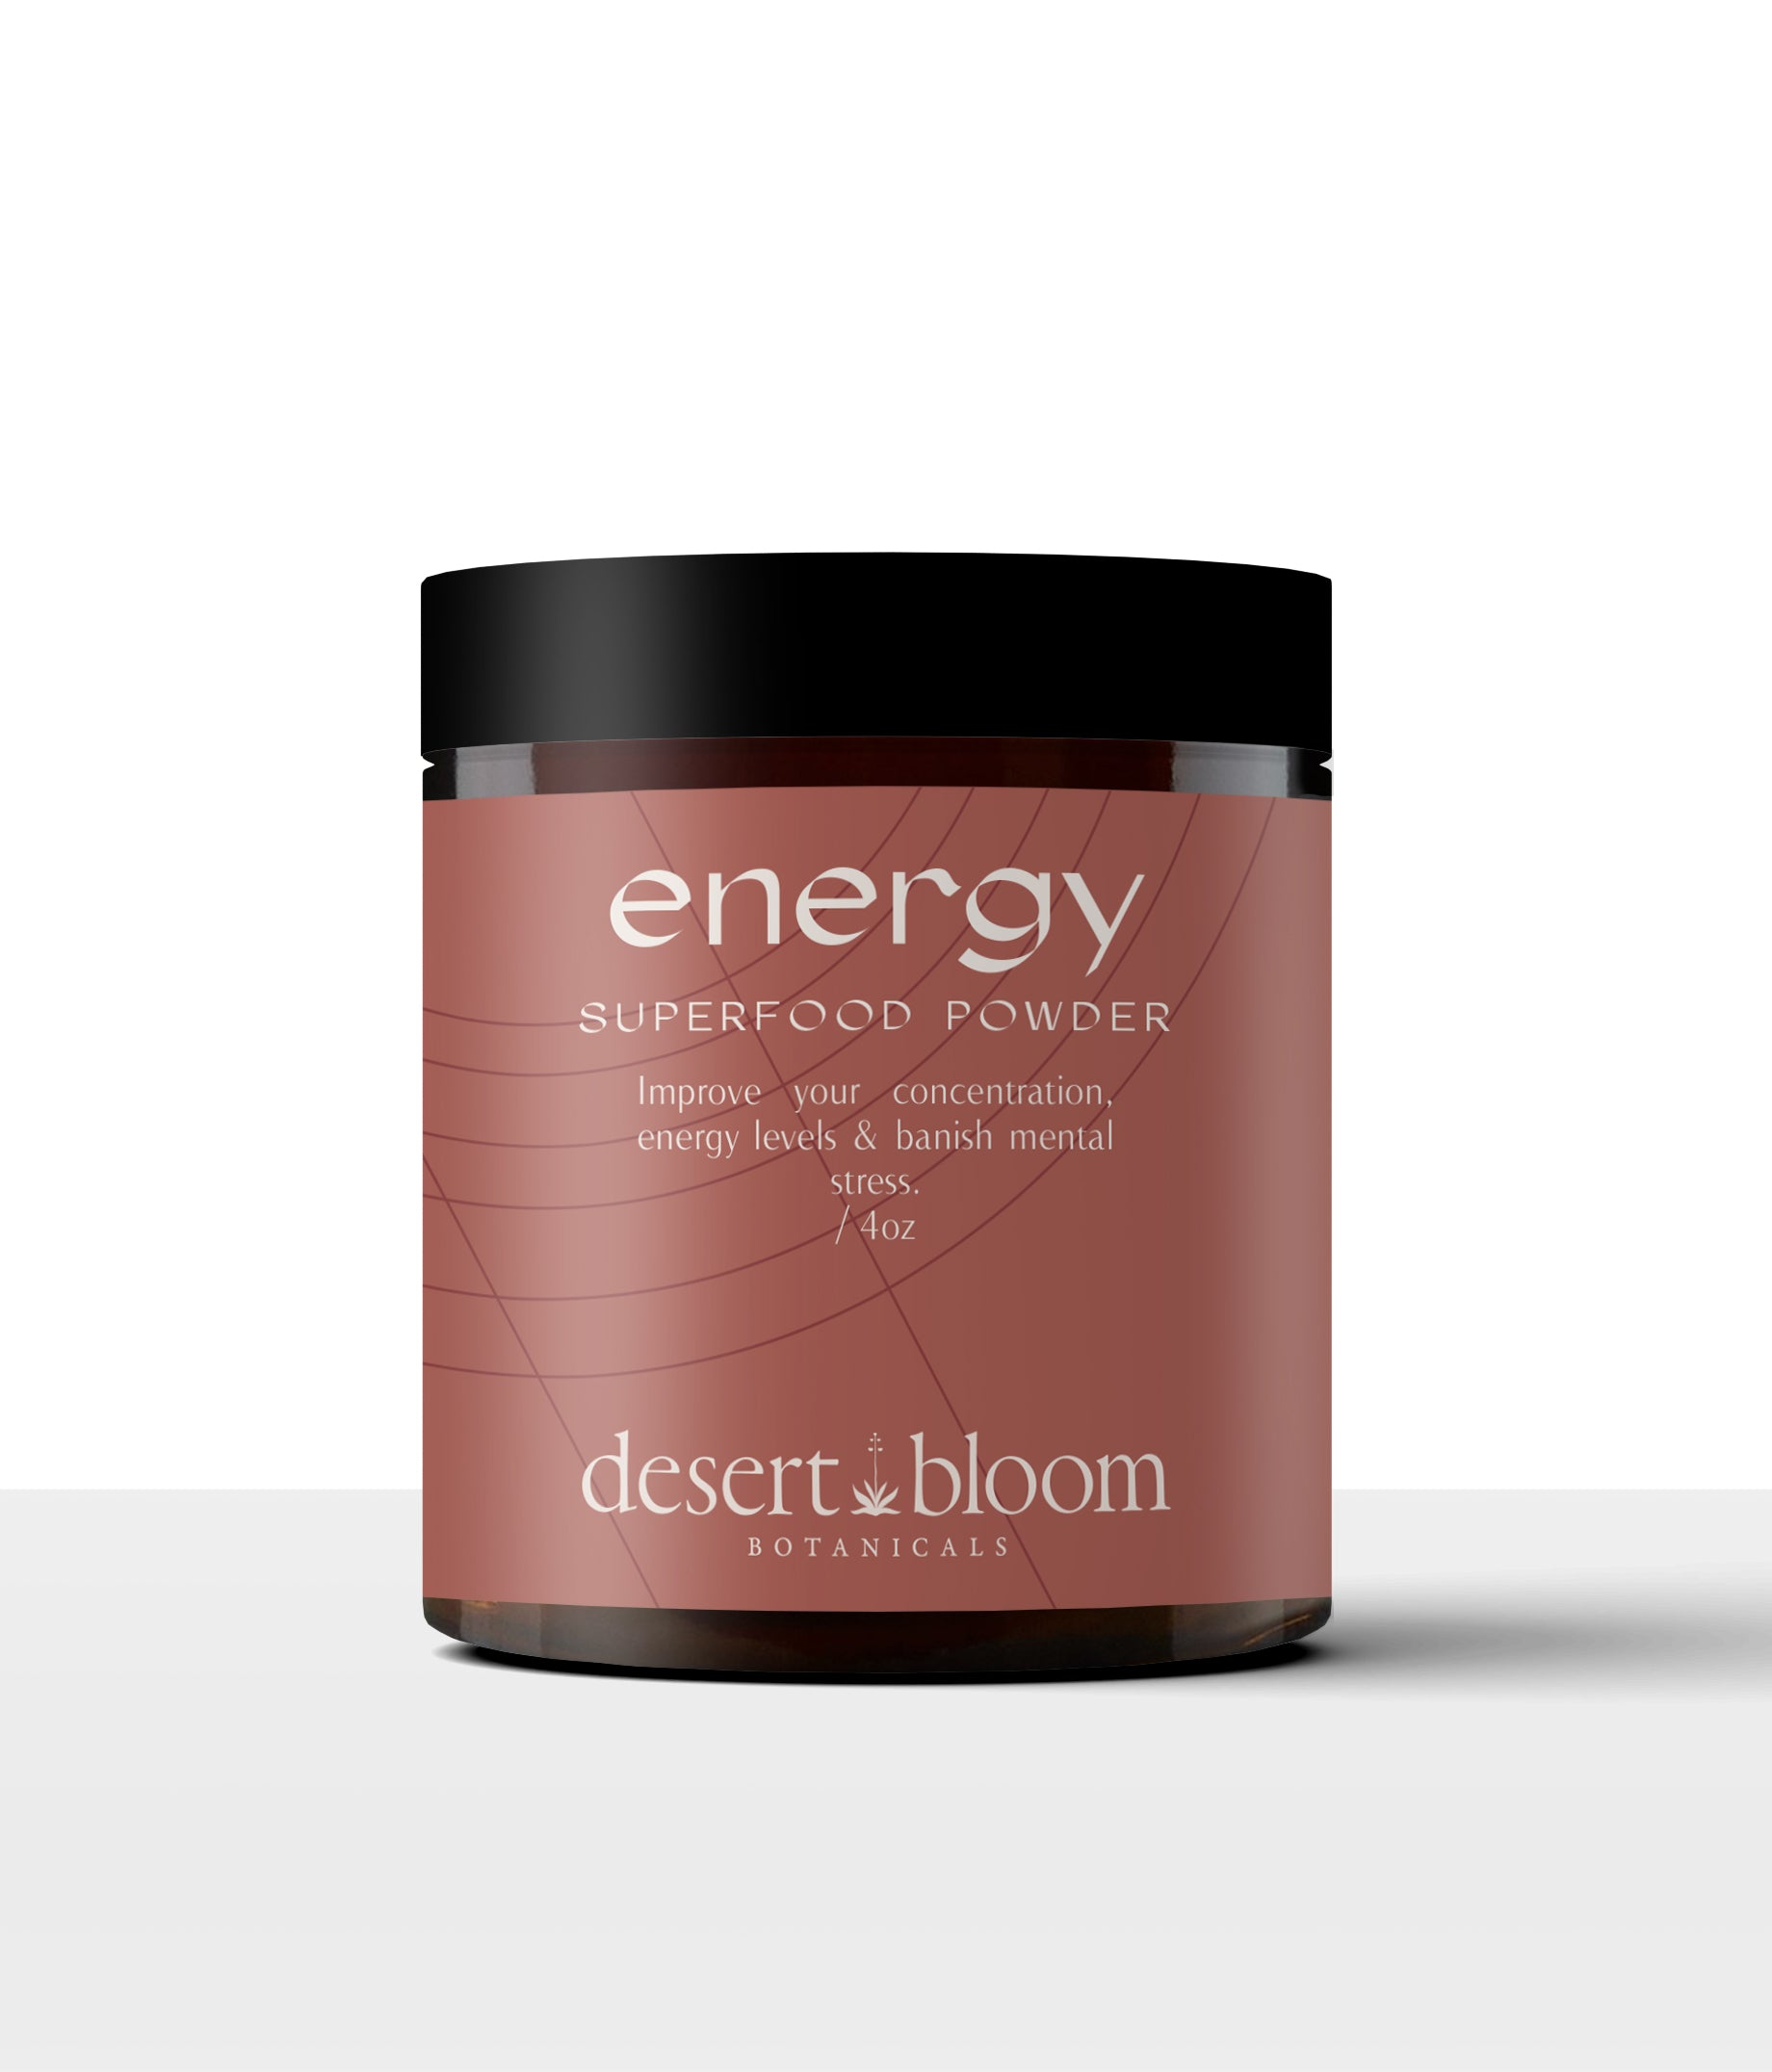 Energy Superfood Powder - Desert Bloom Botanicals